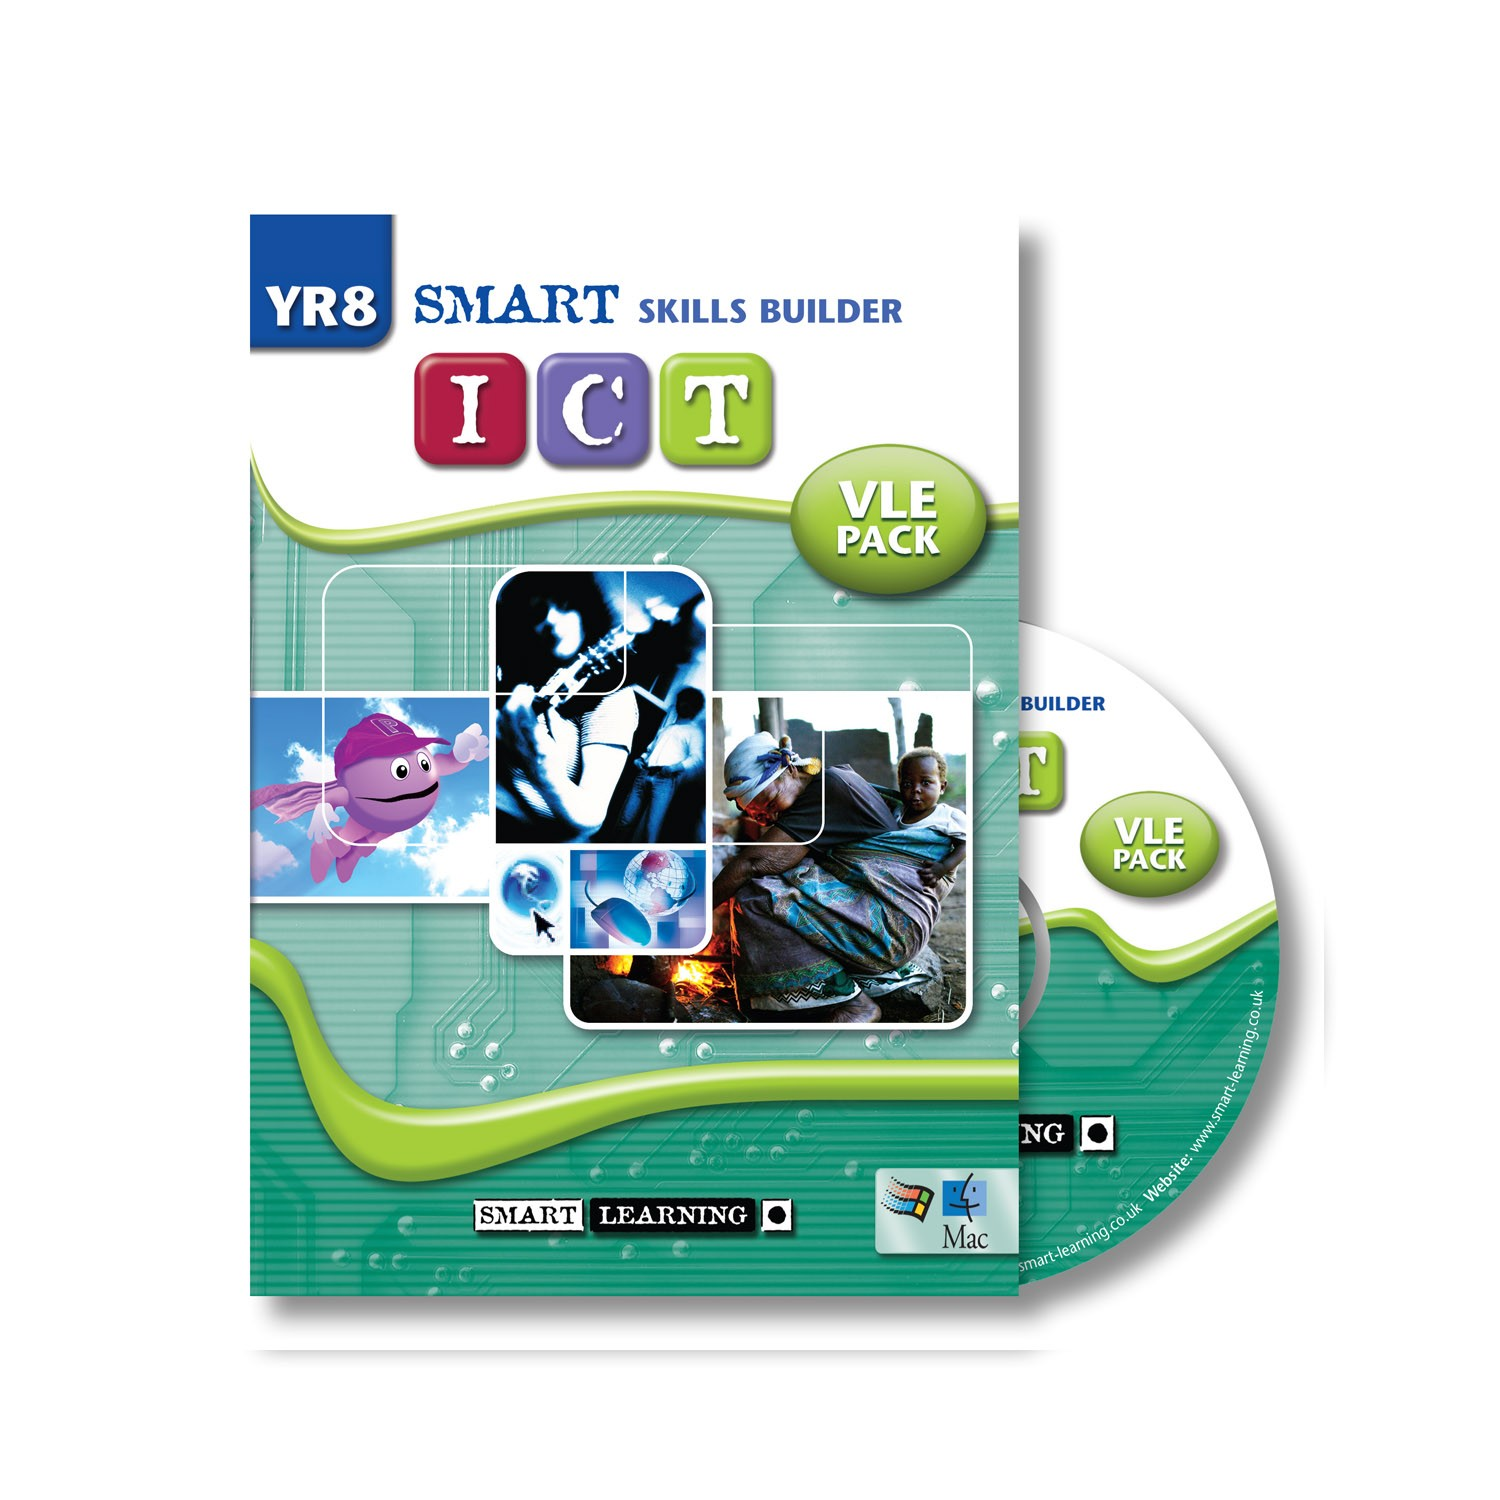 Smart Skills Builder Ict Y8 Ict Vle Pack